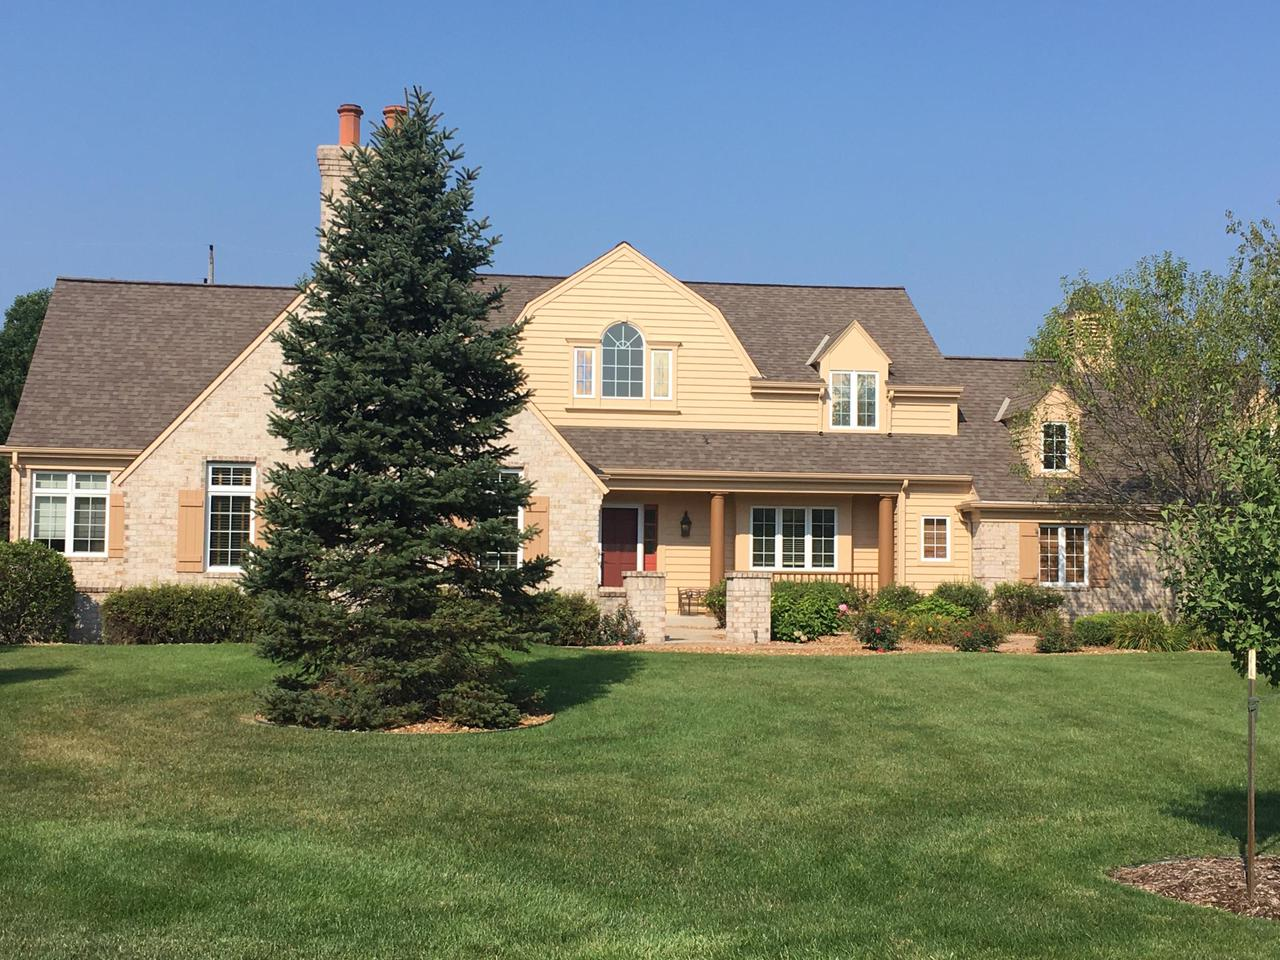 8455 S Fountain Ct COURT, FRANKLIN, WI 53132